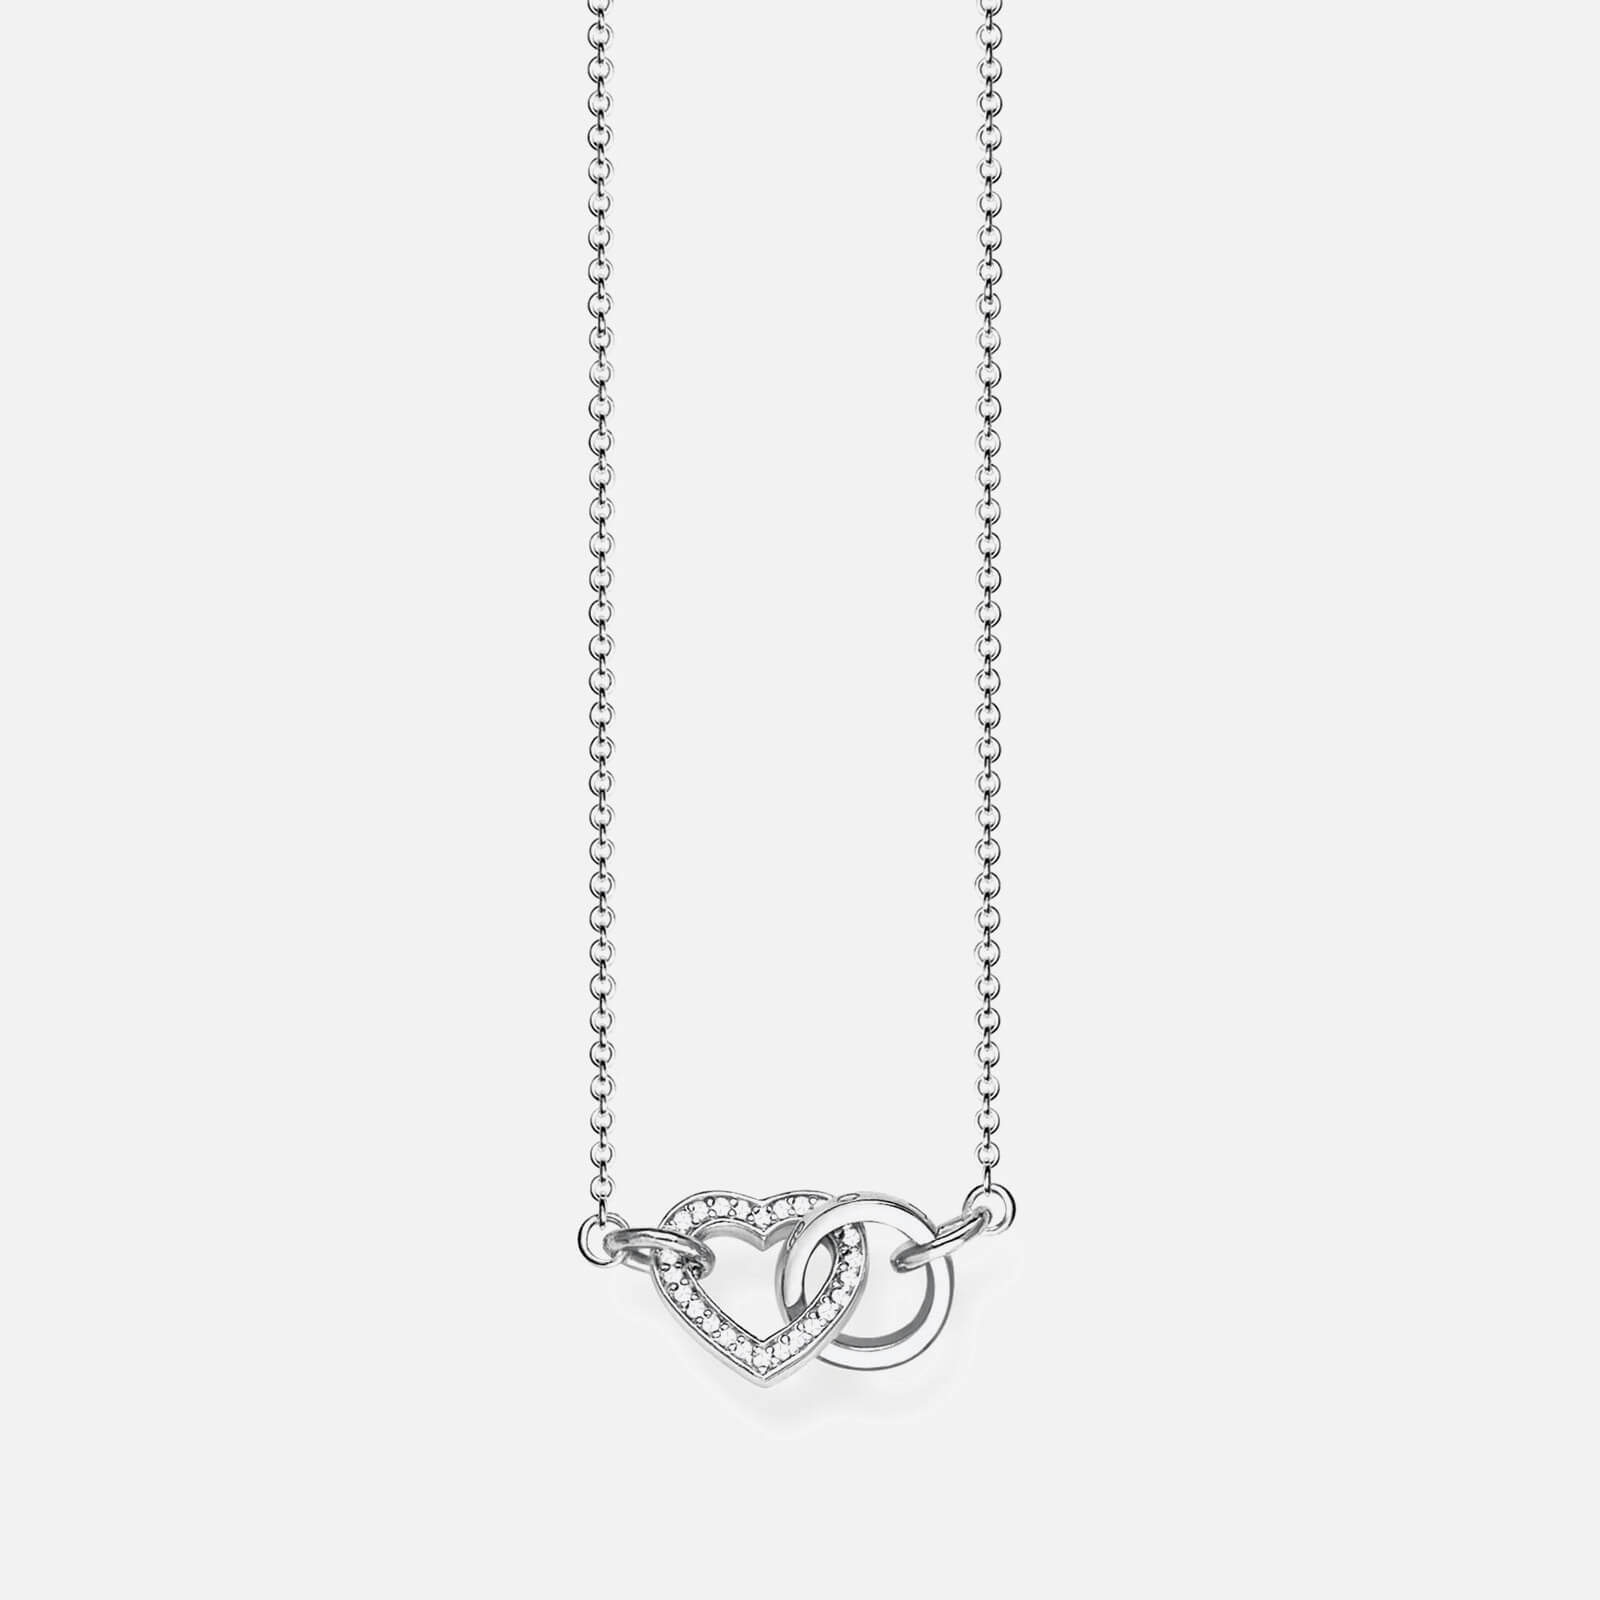 Thomas Sabo Women's Heart Together Necklace - Silver